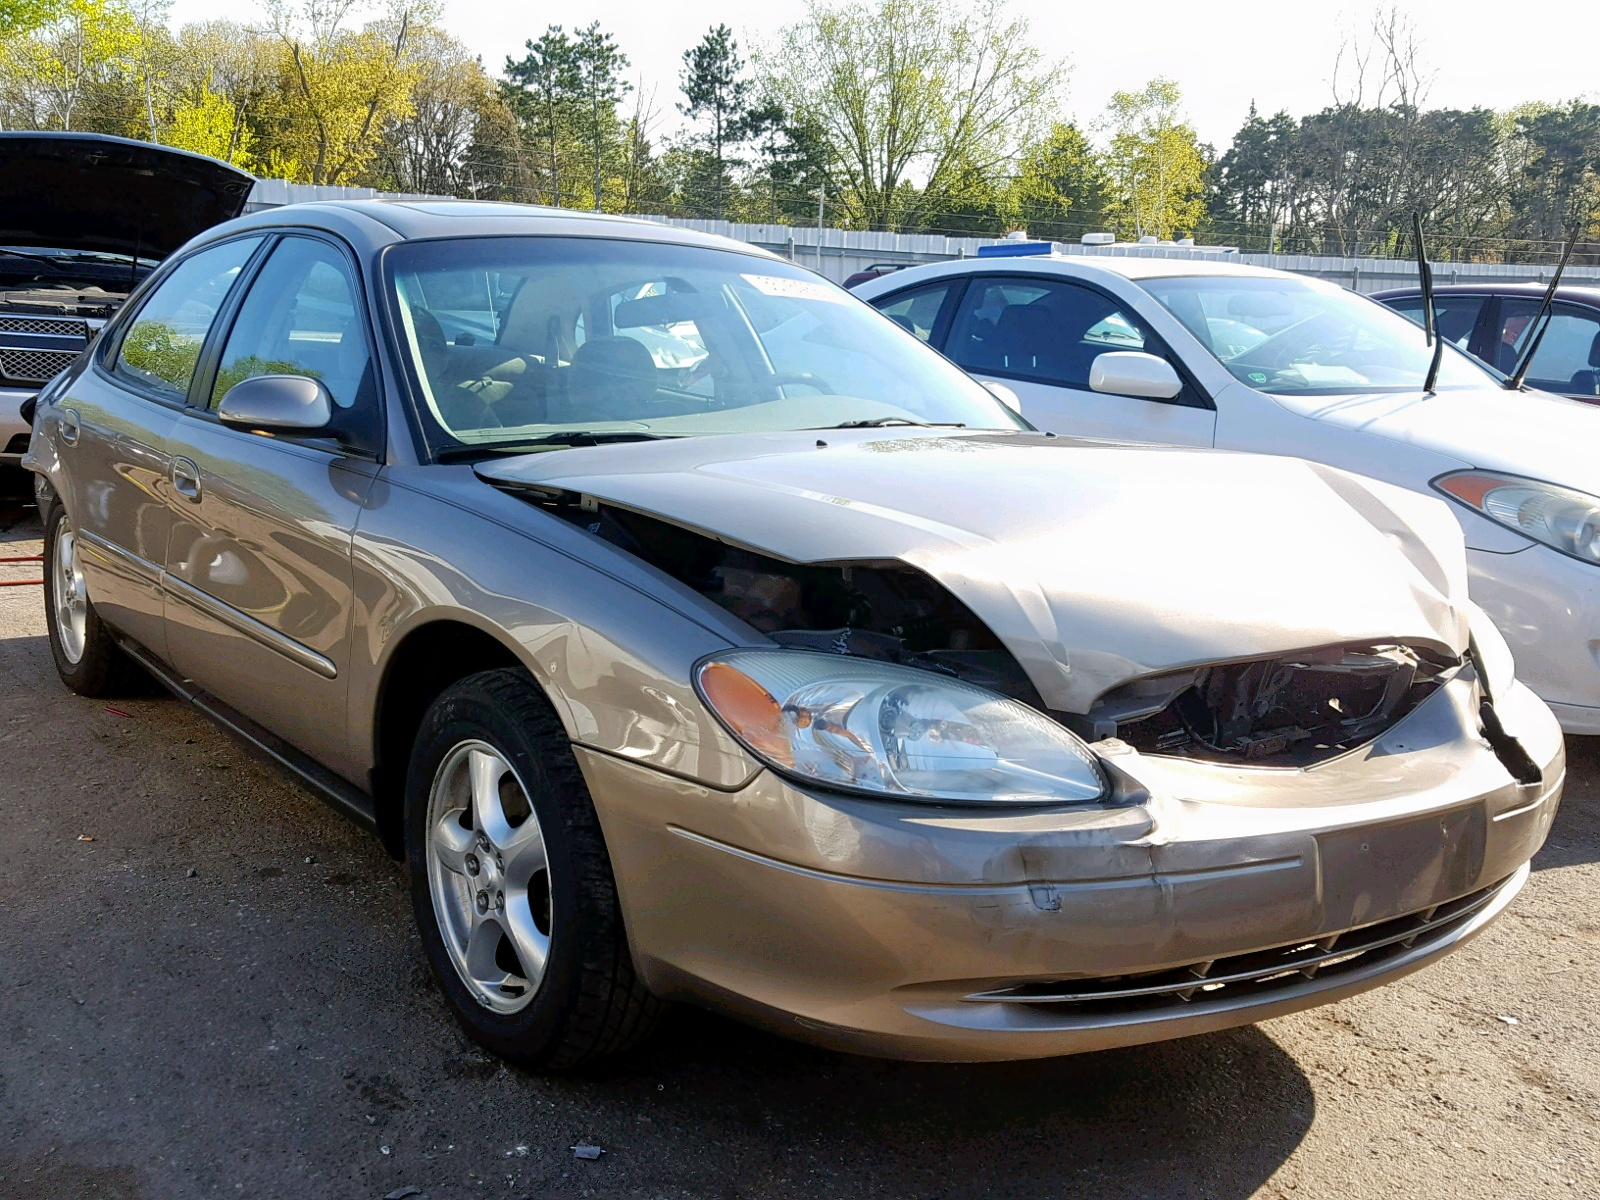 hight resolution of 1fafp55u53g244419 2003 ford taurus ses 3 0l left view 1fafp55u53g244419